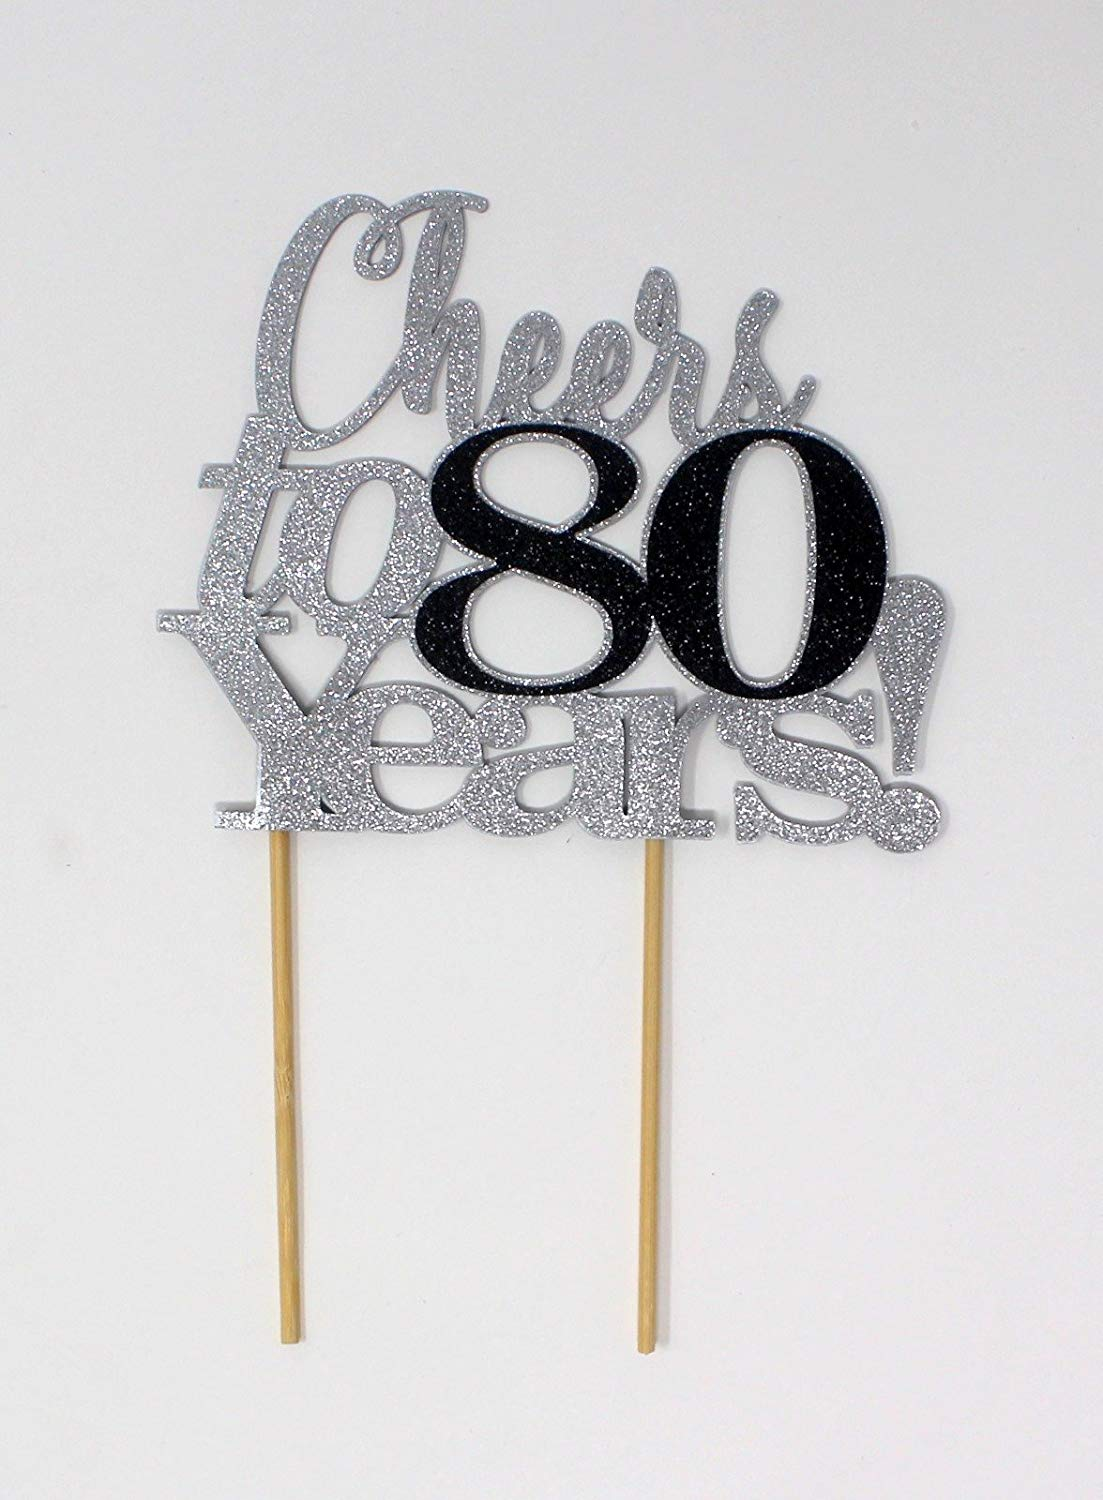 All About Details Cheers to 80 Years! Cake Topper, 1pc, Birthday, Anniversary, Party Decor, Glitter Topper (Silver & Black)